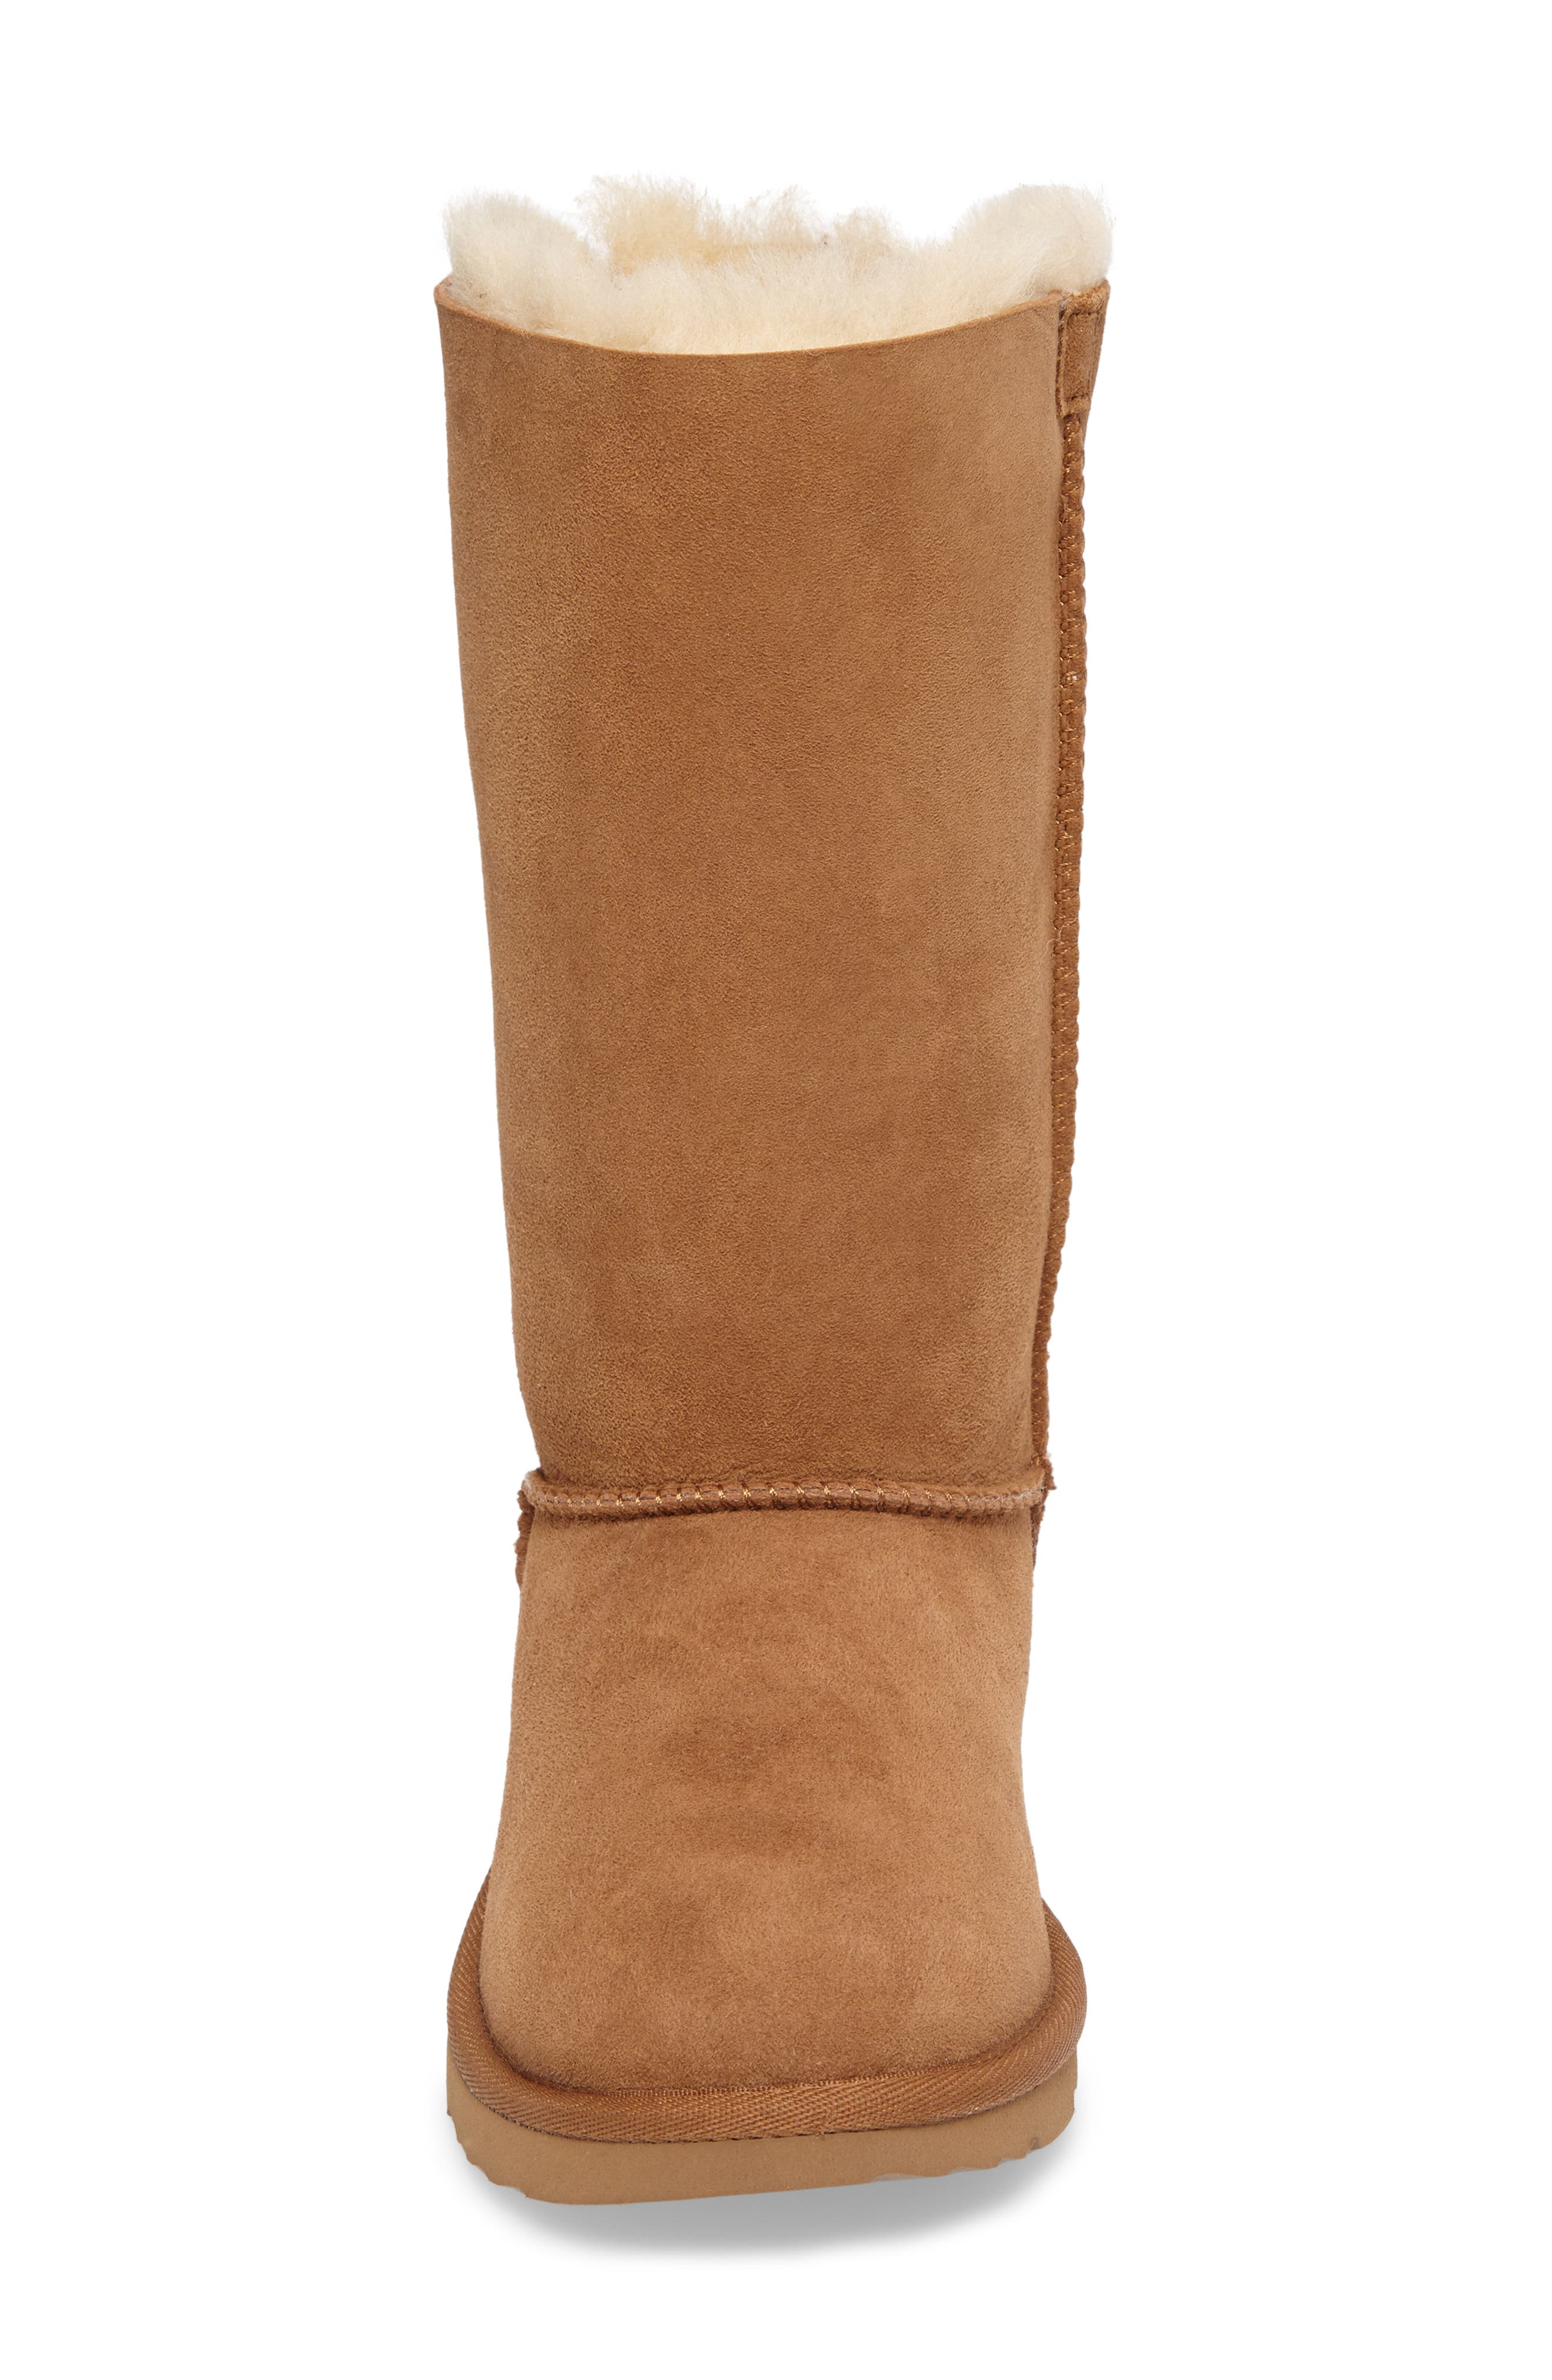 Bailey Bow Tall II Water Resistant Genuine Shearling Boot,                             Alternate thumbnail 4, color,                             Chestnut Brown